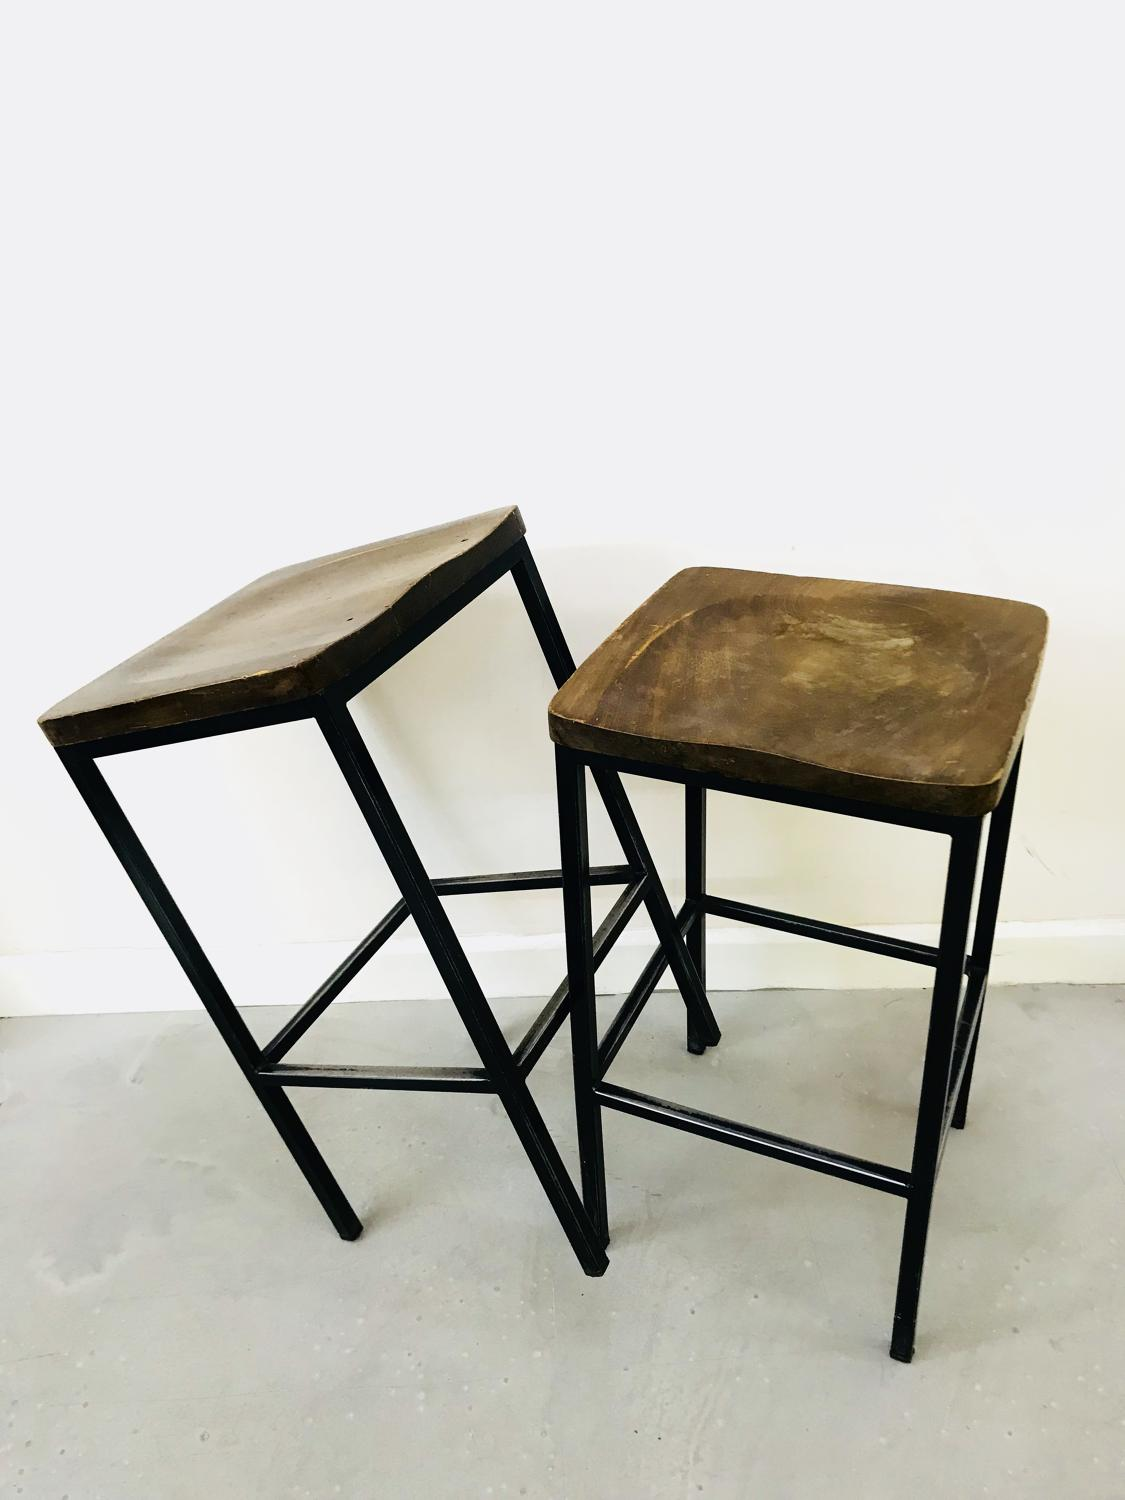 Remarkable Reclaimed Vintage Lab Stools In Seating Tables Beatyapartments Chair Design Images Beatyapartmentscom